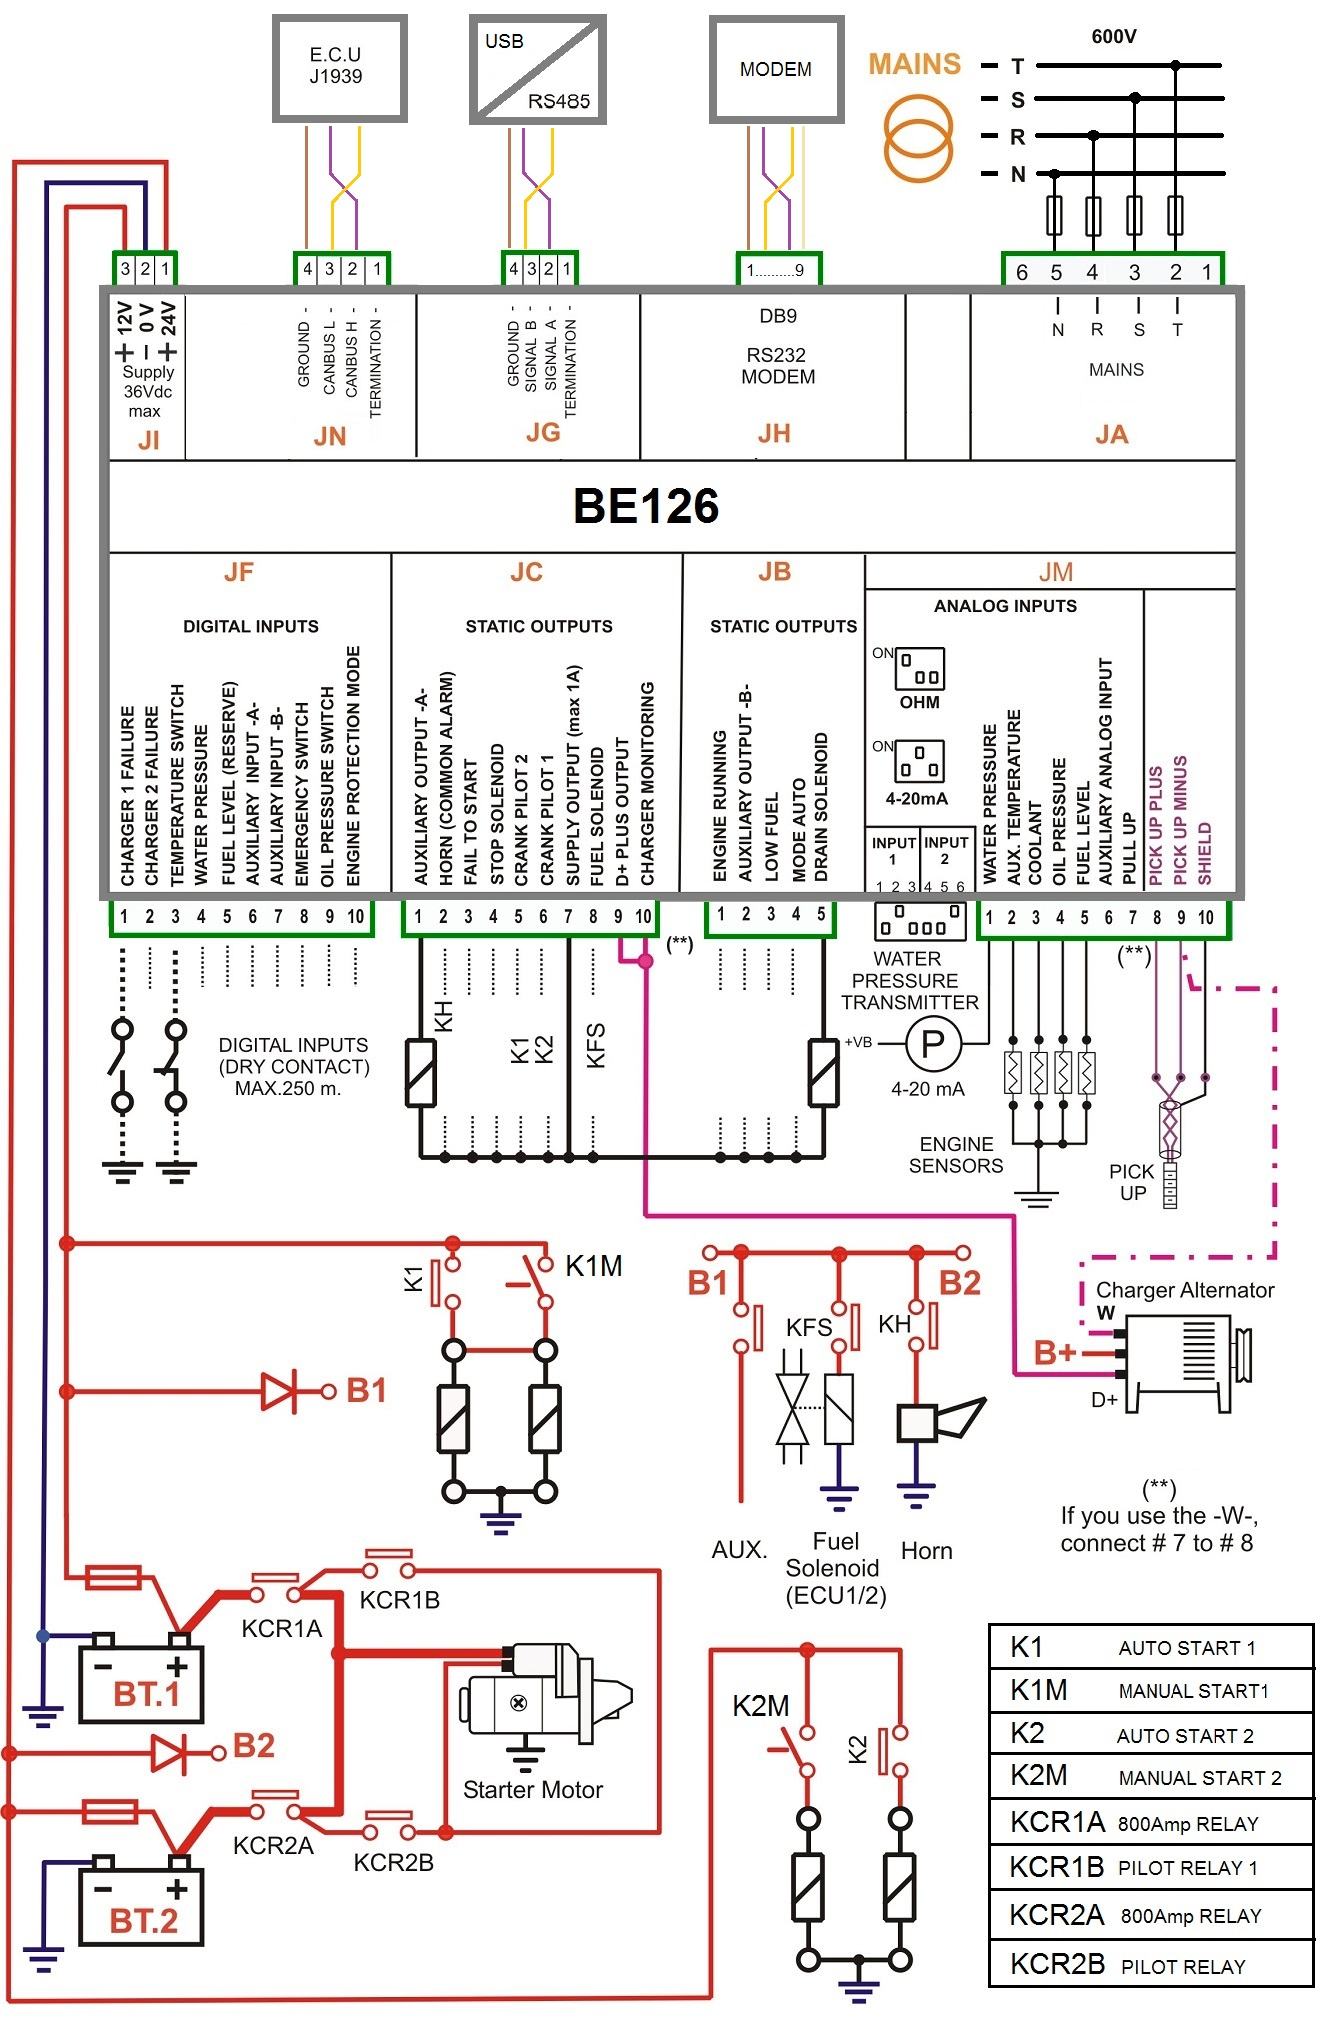 Control Wiring Schematics List Of Schematic Circuit Diagram Ford 1715 Tractor Fire Pump Controller Genset Rh Bernini Design Com Apfc